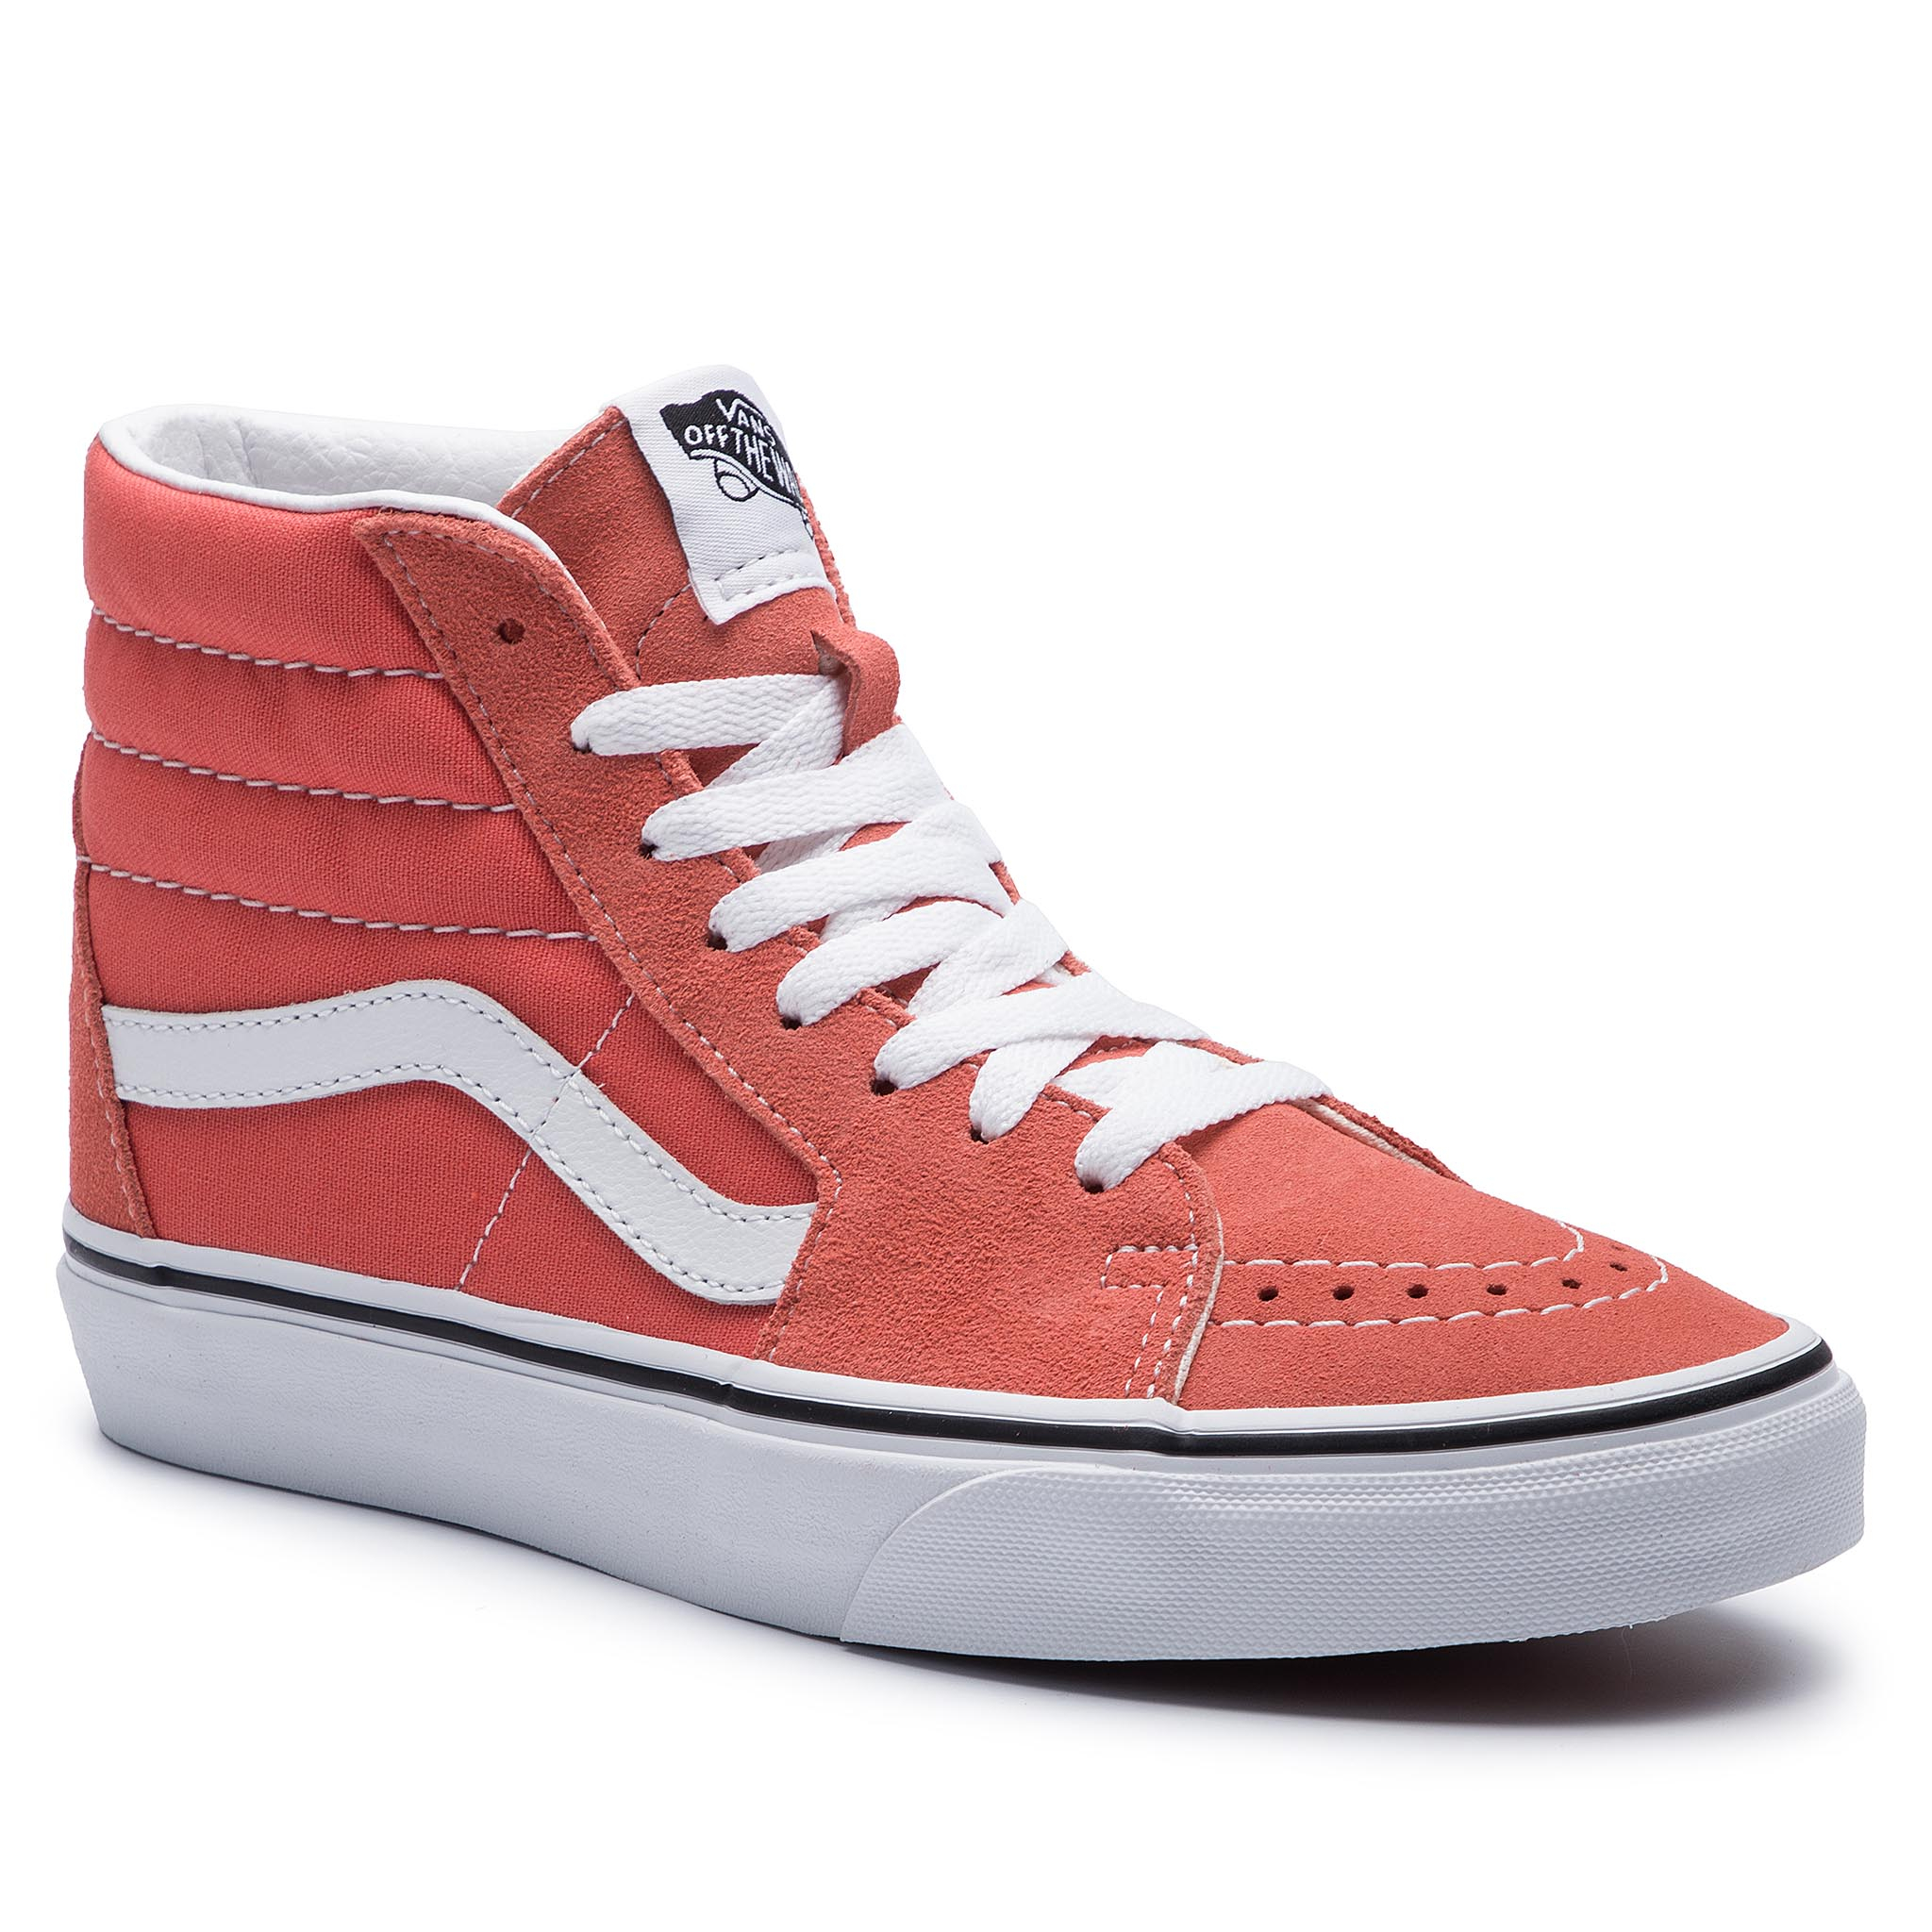 Sneakers VANS - Sk8-Hi VN0A38GEVKR1 Emberglow/True White